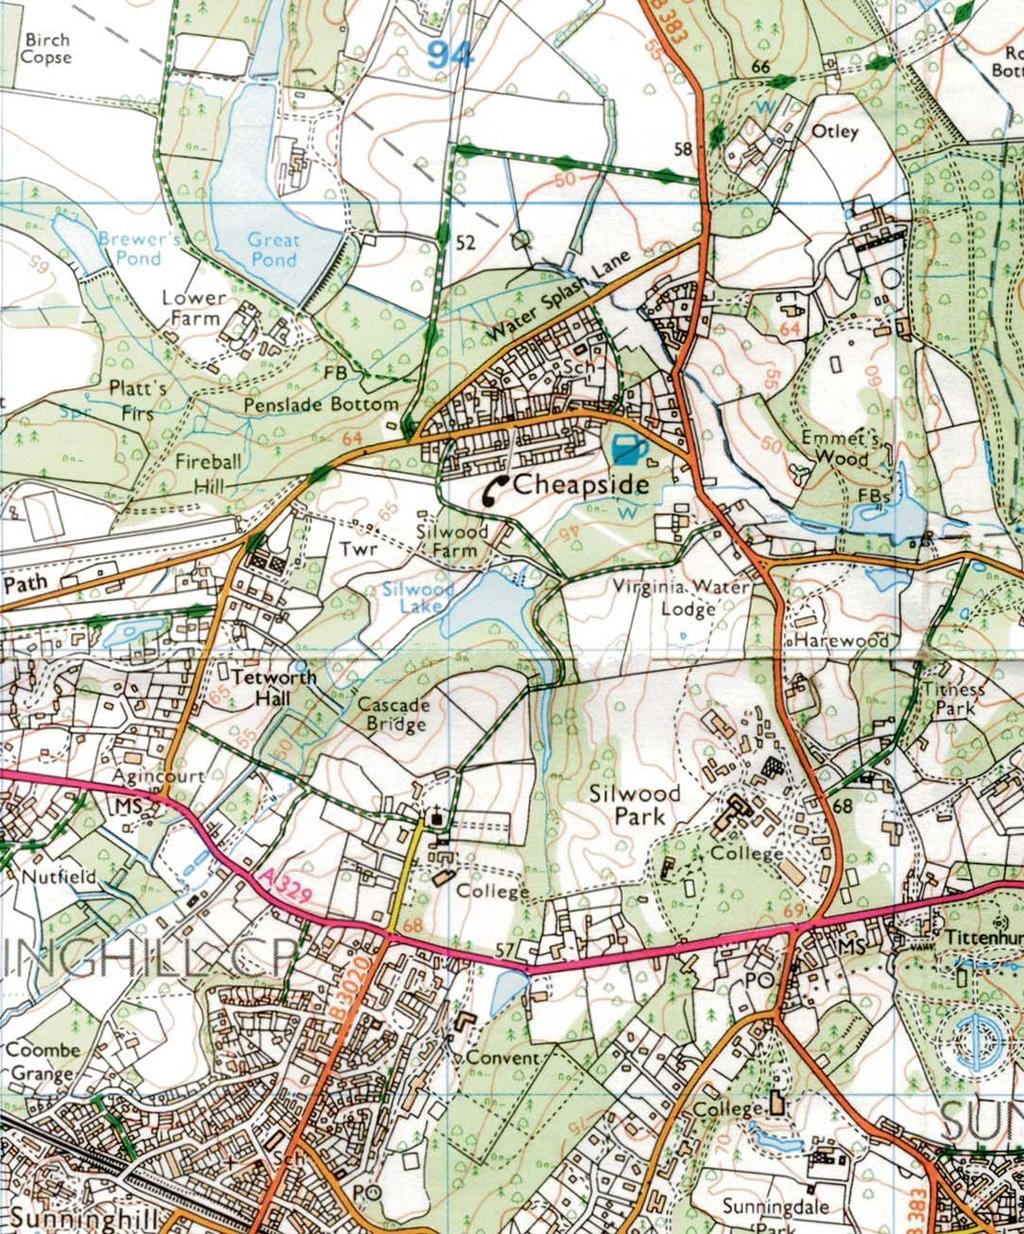 Maidenhead Slough READING Windsor 70000 Hungerford Newbury Thatcham Wokingham Bracknell SITE SITE 69000 68000 Silwood Farm, Silwood Park, Cheapside Road, Ascot, Berkshire, 2009